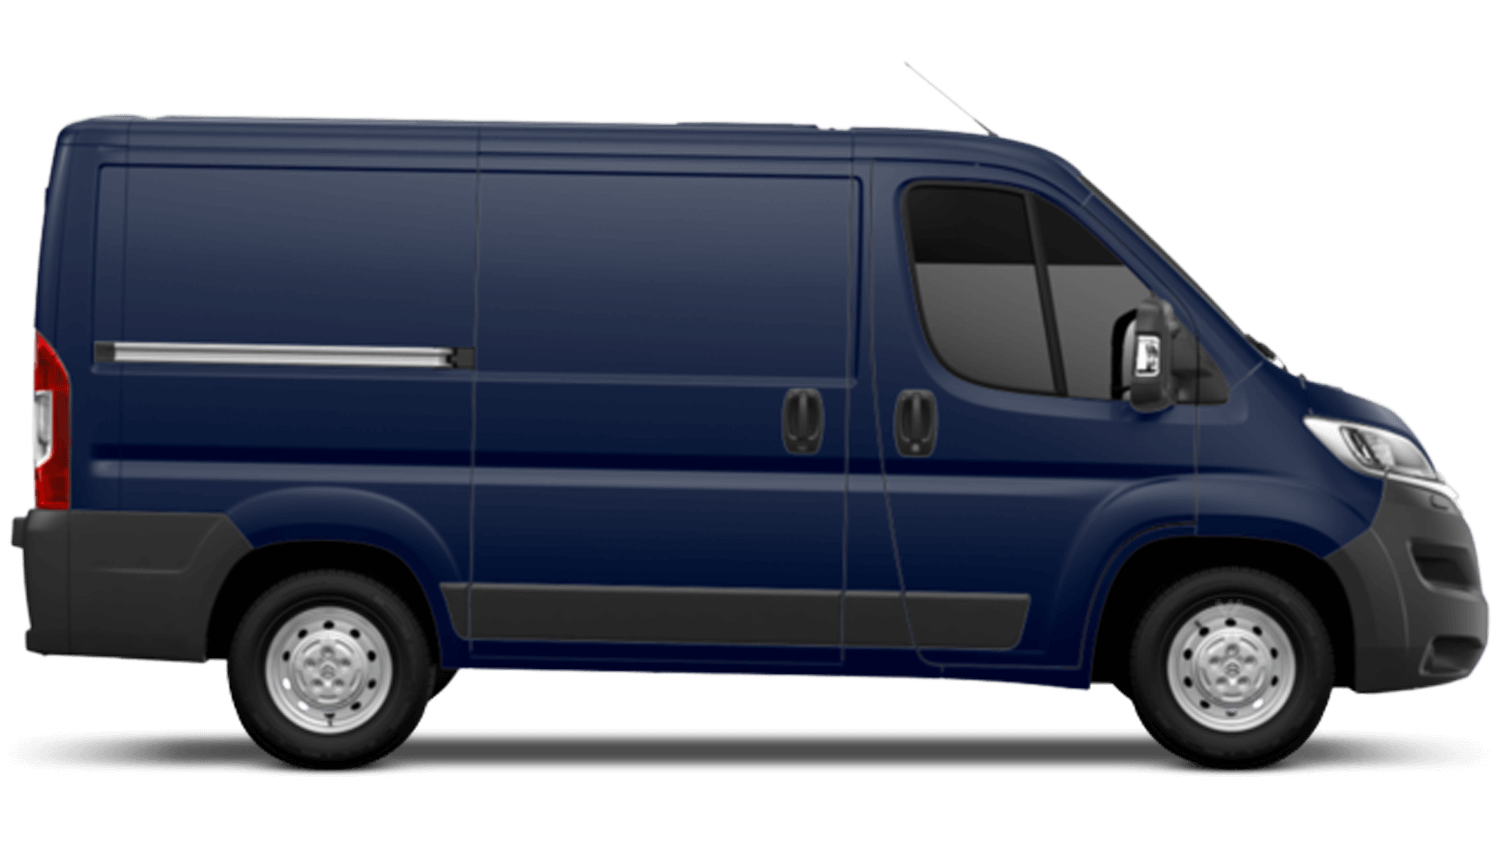 New CITROËN Relay 35 L2H2 BlueHDi 140 Enterprise - Save 15,150!